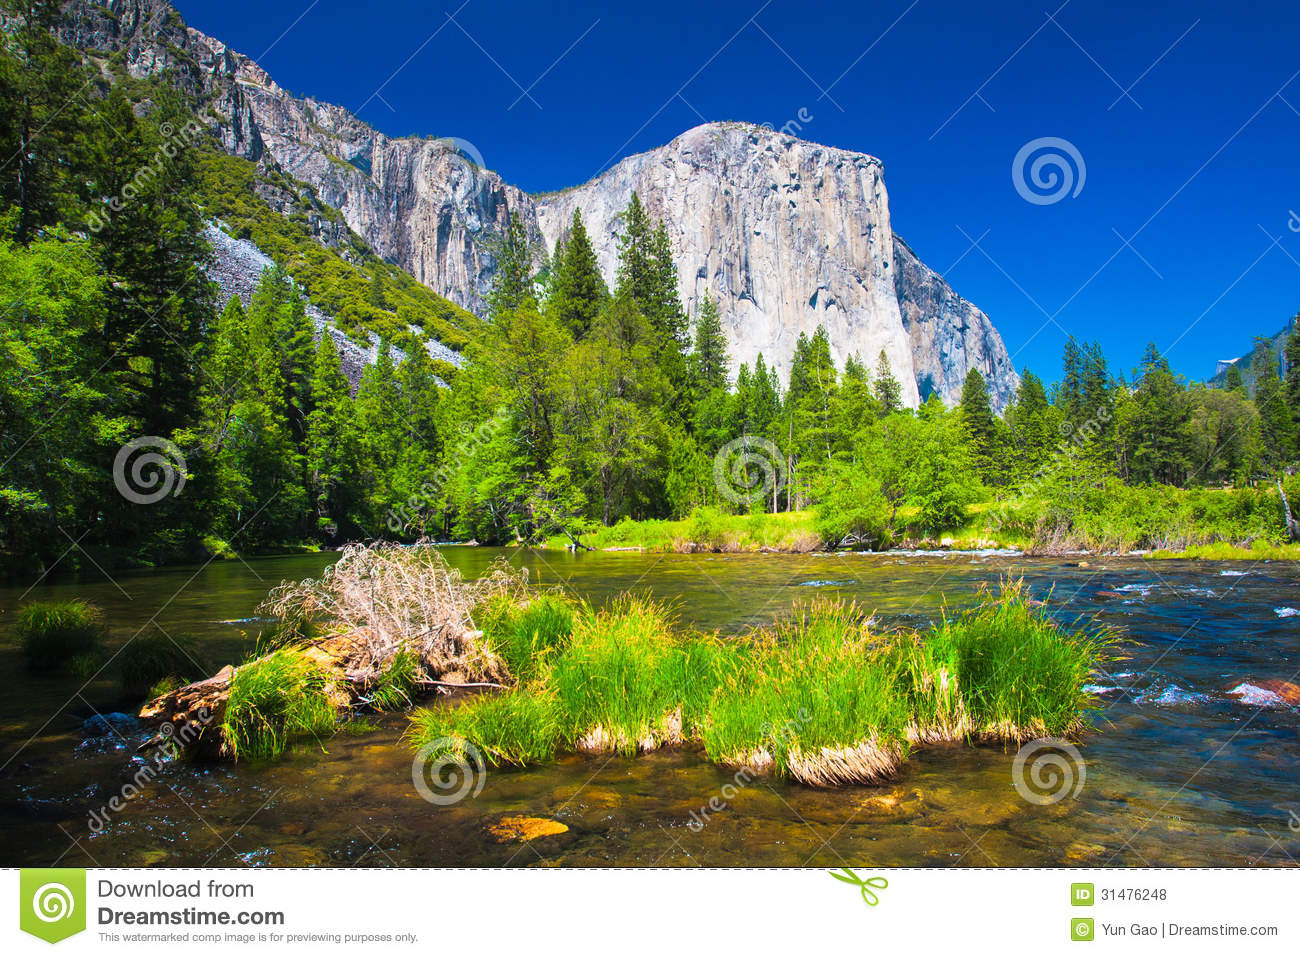 El Capitan Rock And Merced River In Yosemite National Park.